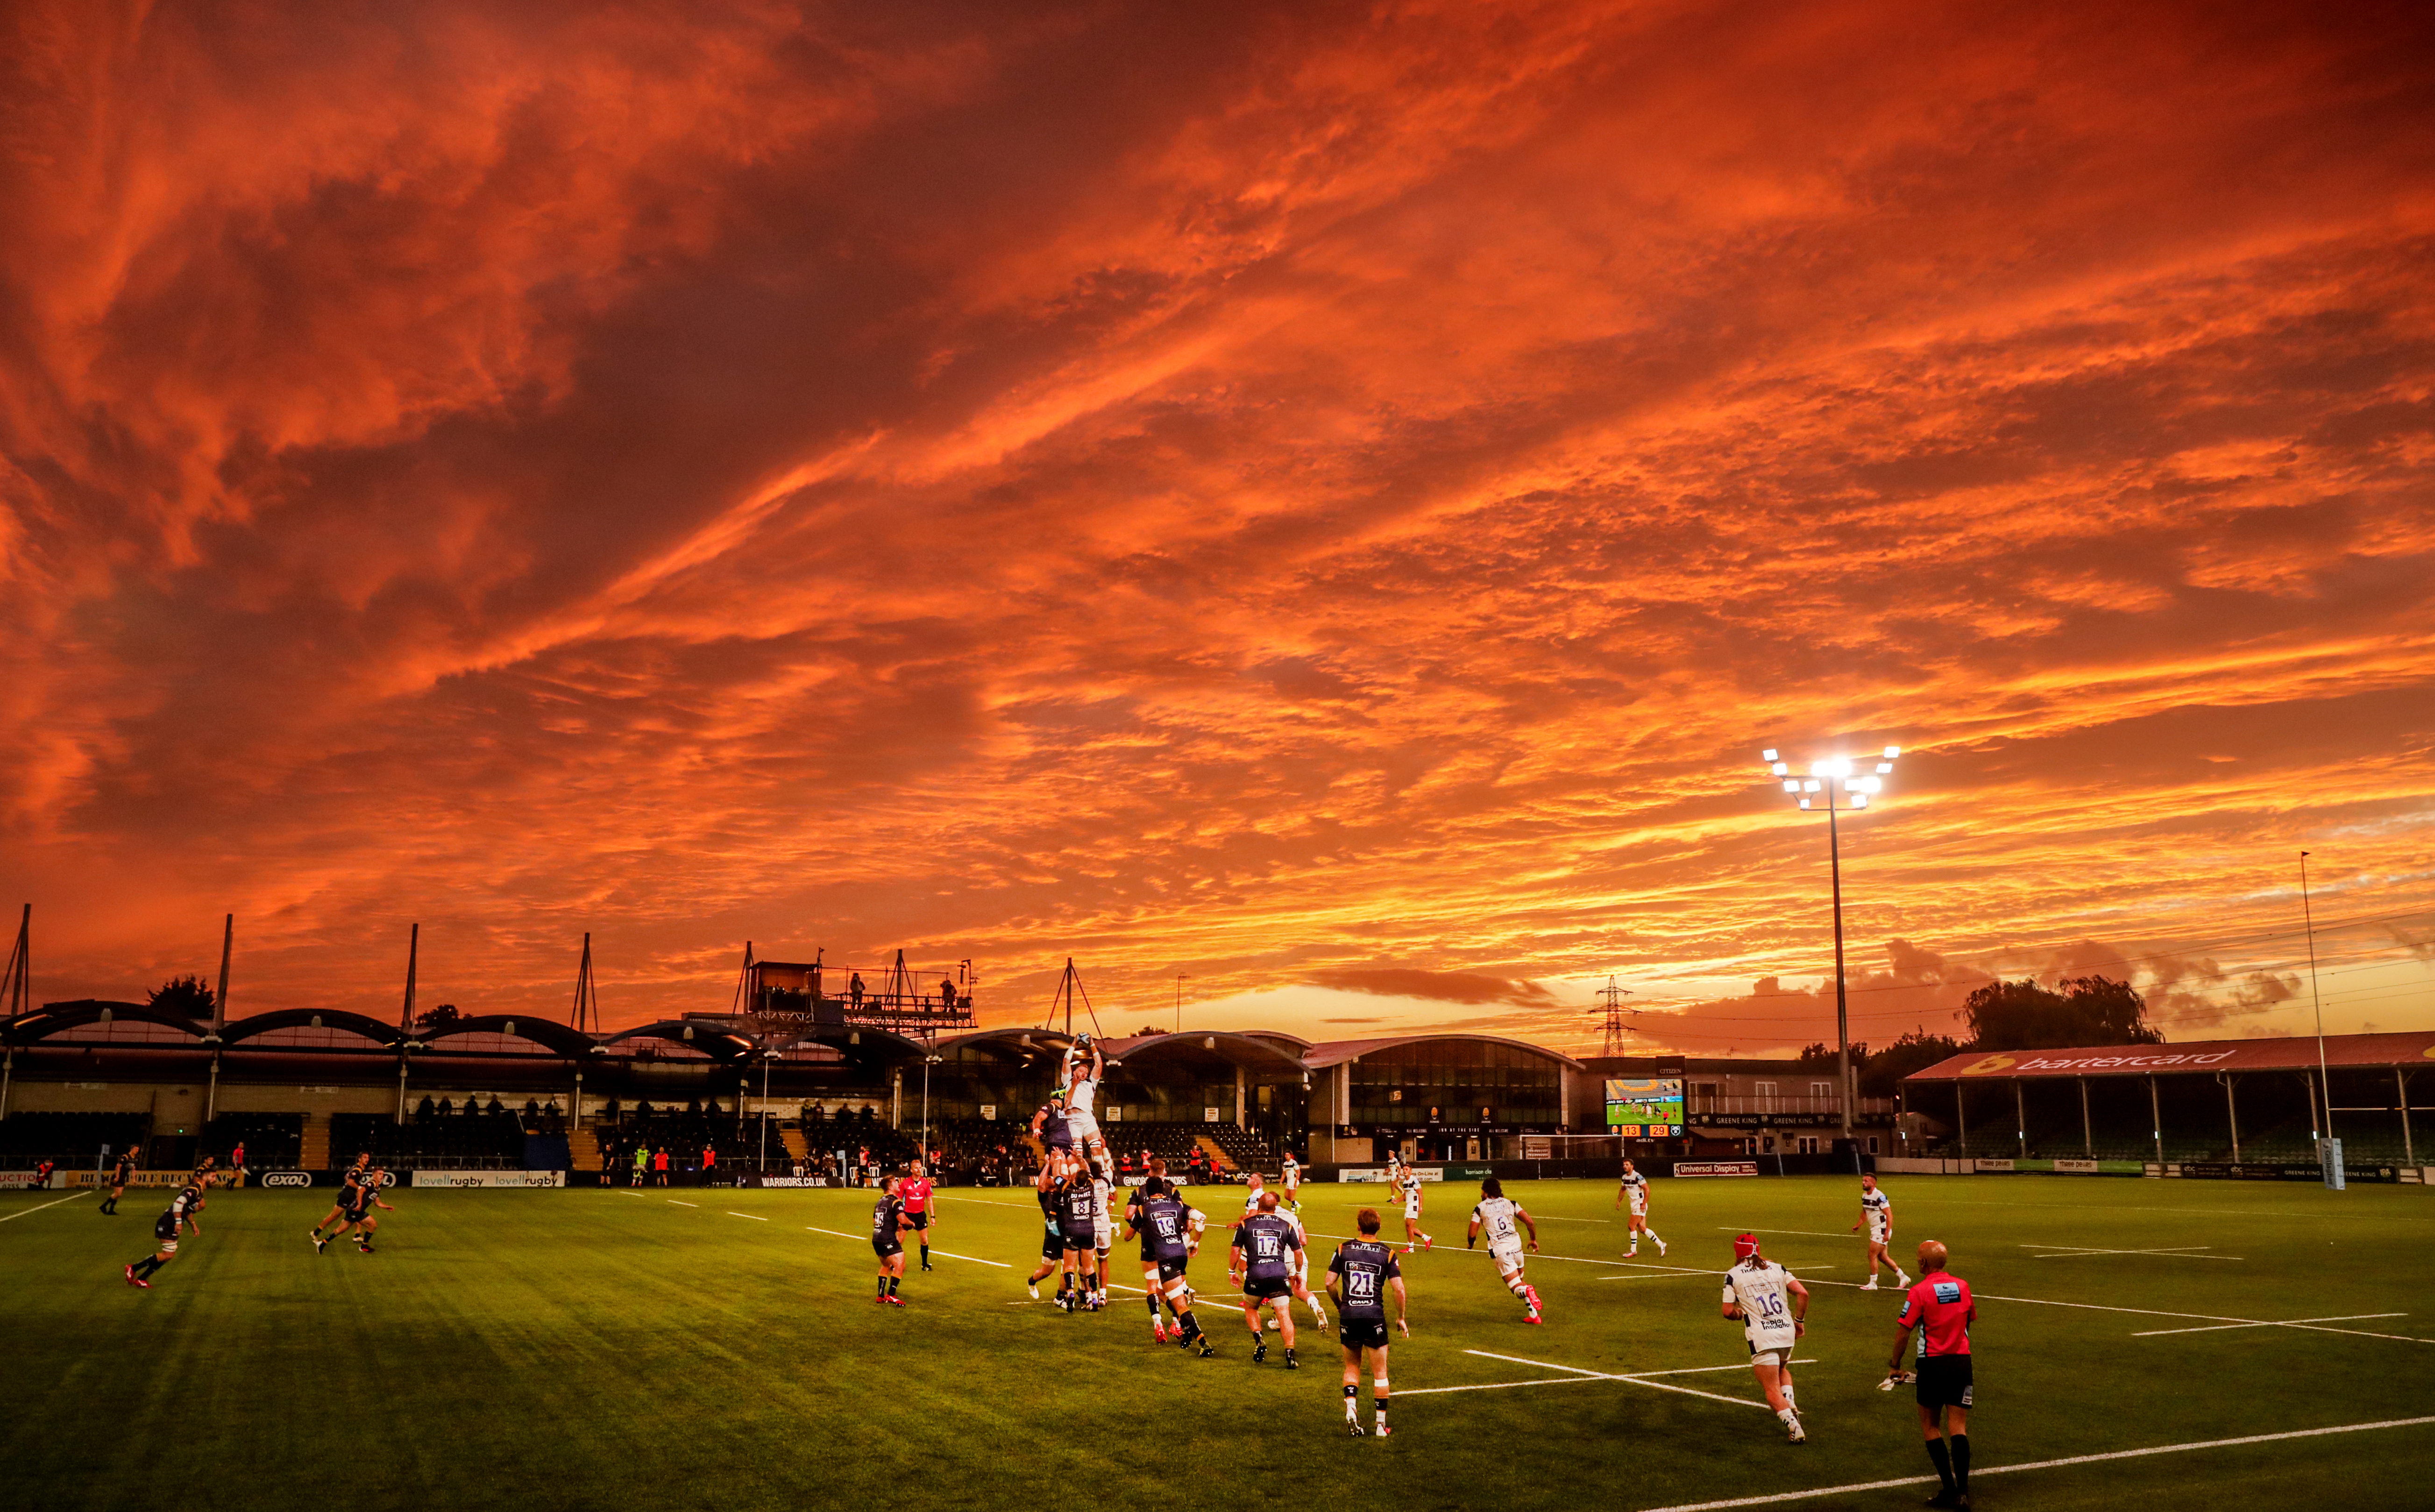 Stunning skies light up Worcester's Gallagher Premiership clash with Bristol in early September. The Bears ran out 36-13 winners at Sixways Stadium but, after finishing the prolonged season in third place, were defeated by Wasps in the play-off semi-finals.